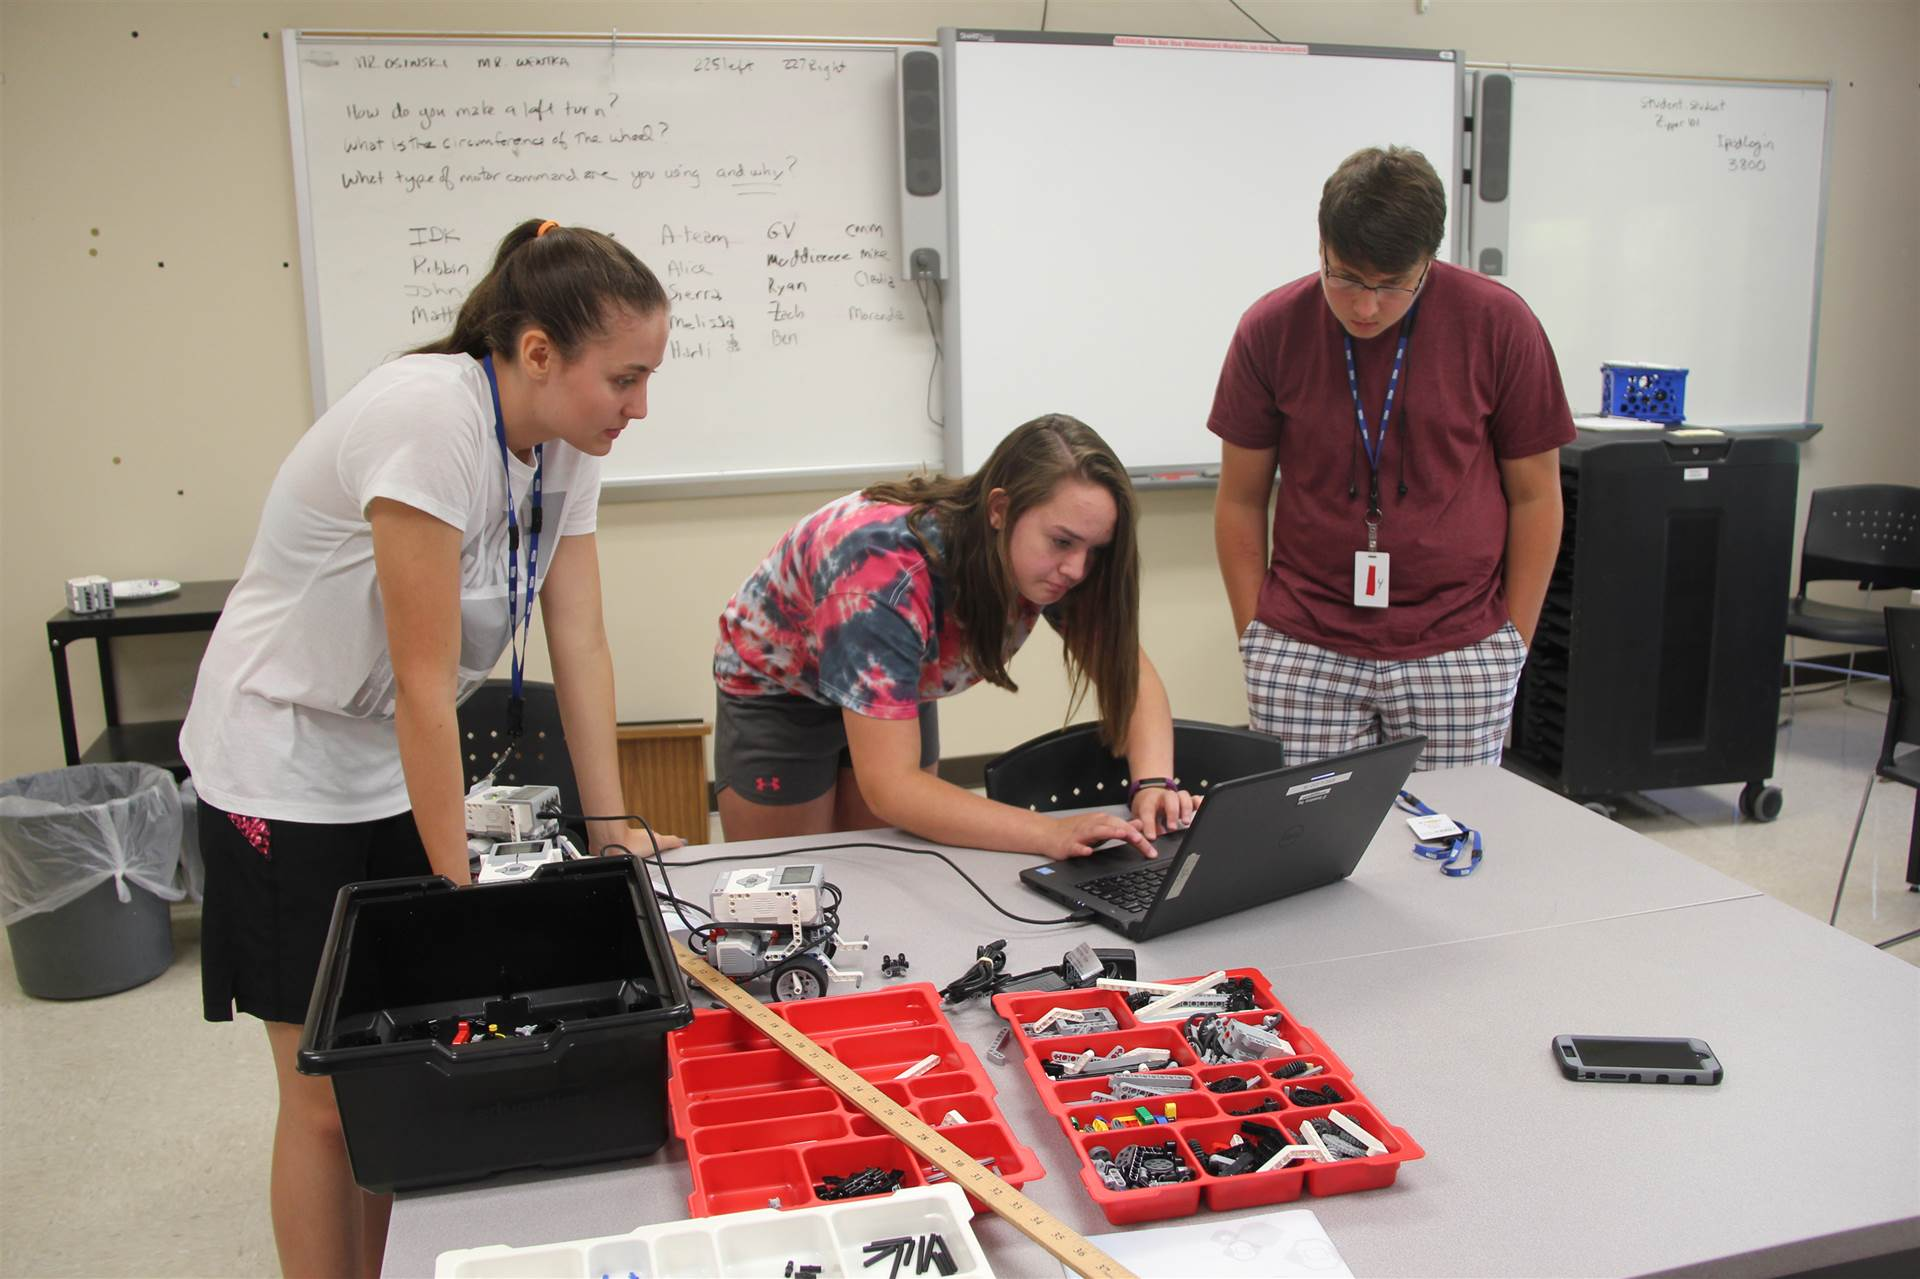 miranda rogers works with group for summer steam